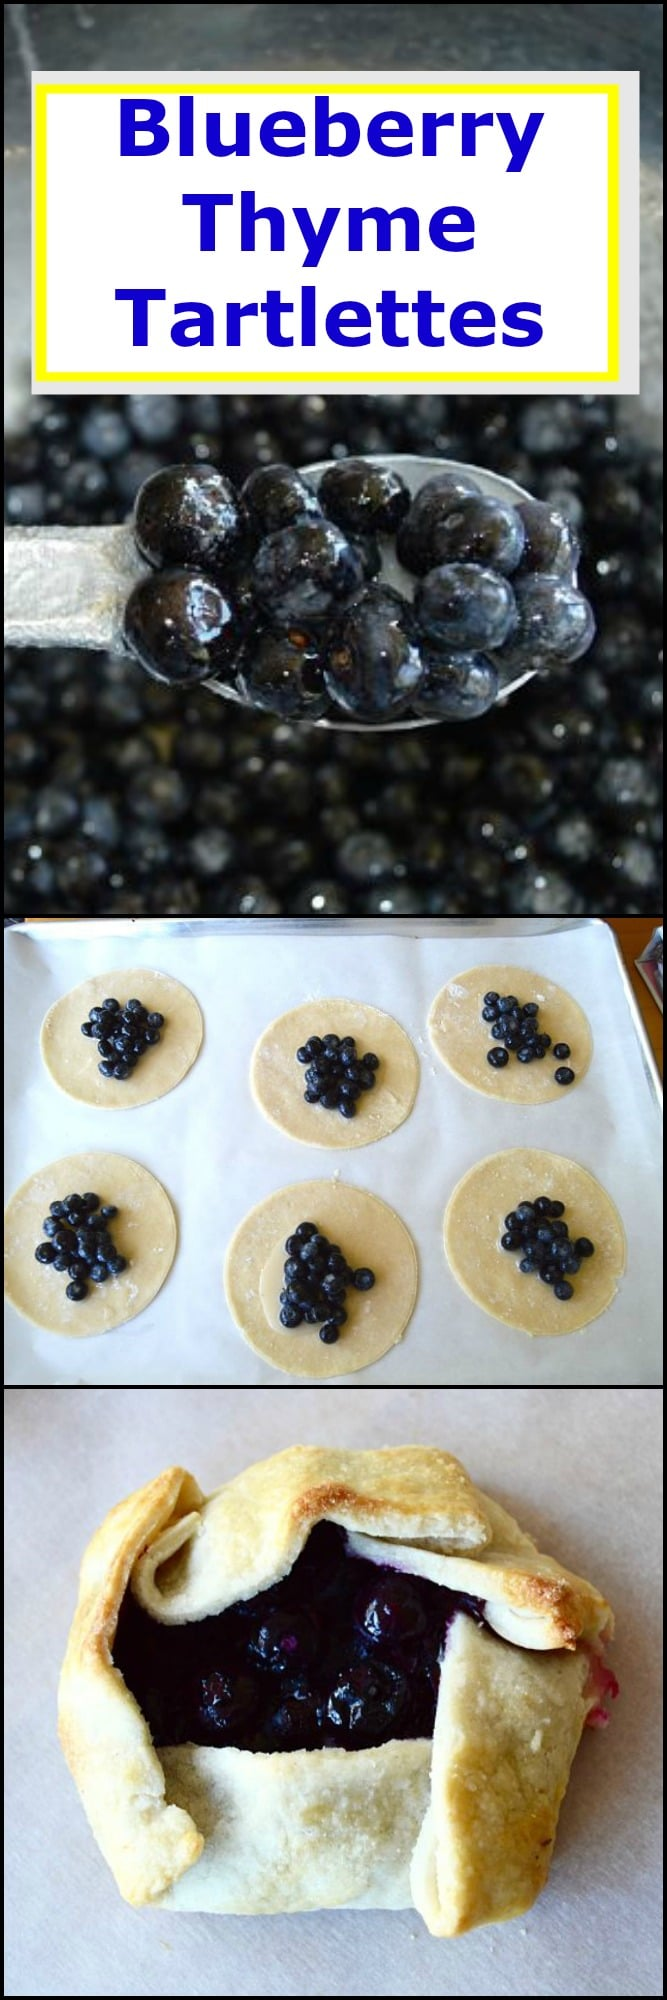 This recipe for Blueberry Thyme Mini Tartlets is the perfect use of fresh blueberries. Just a few simple ingredients but when mixed together it's bursting with juicy sweet blueberries with hints of citrus and time all wrapped in a flaky buttery crust!